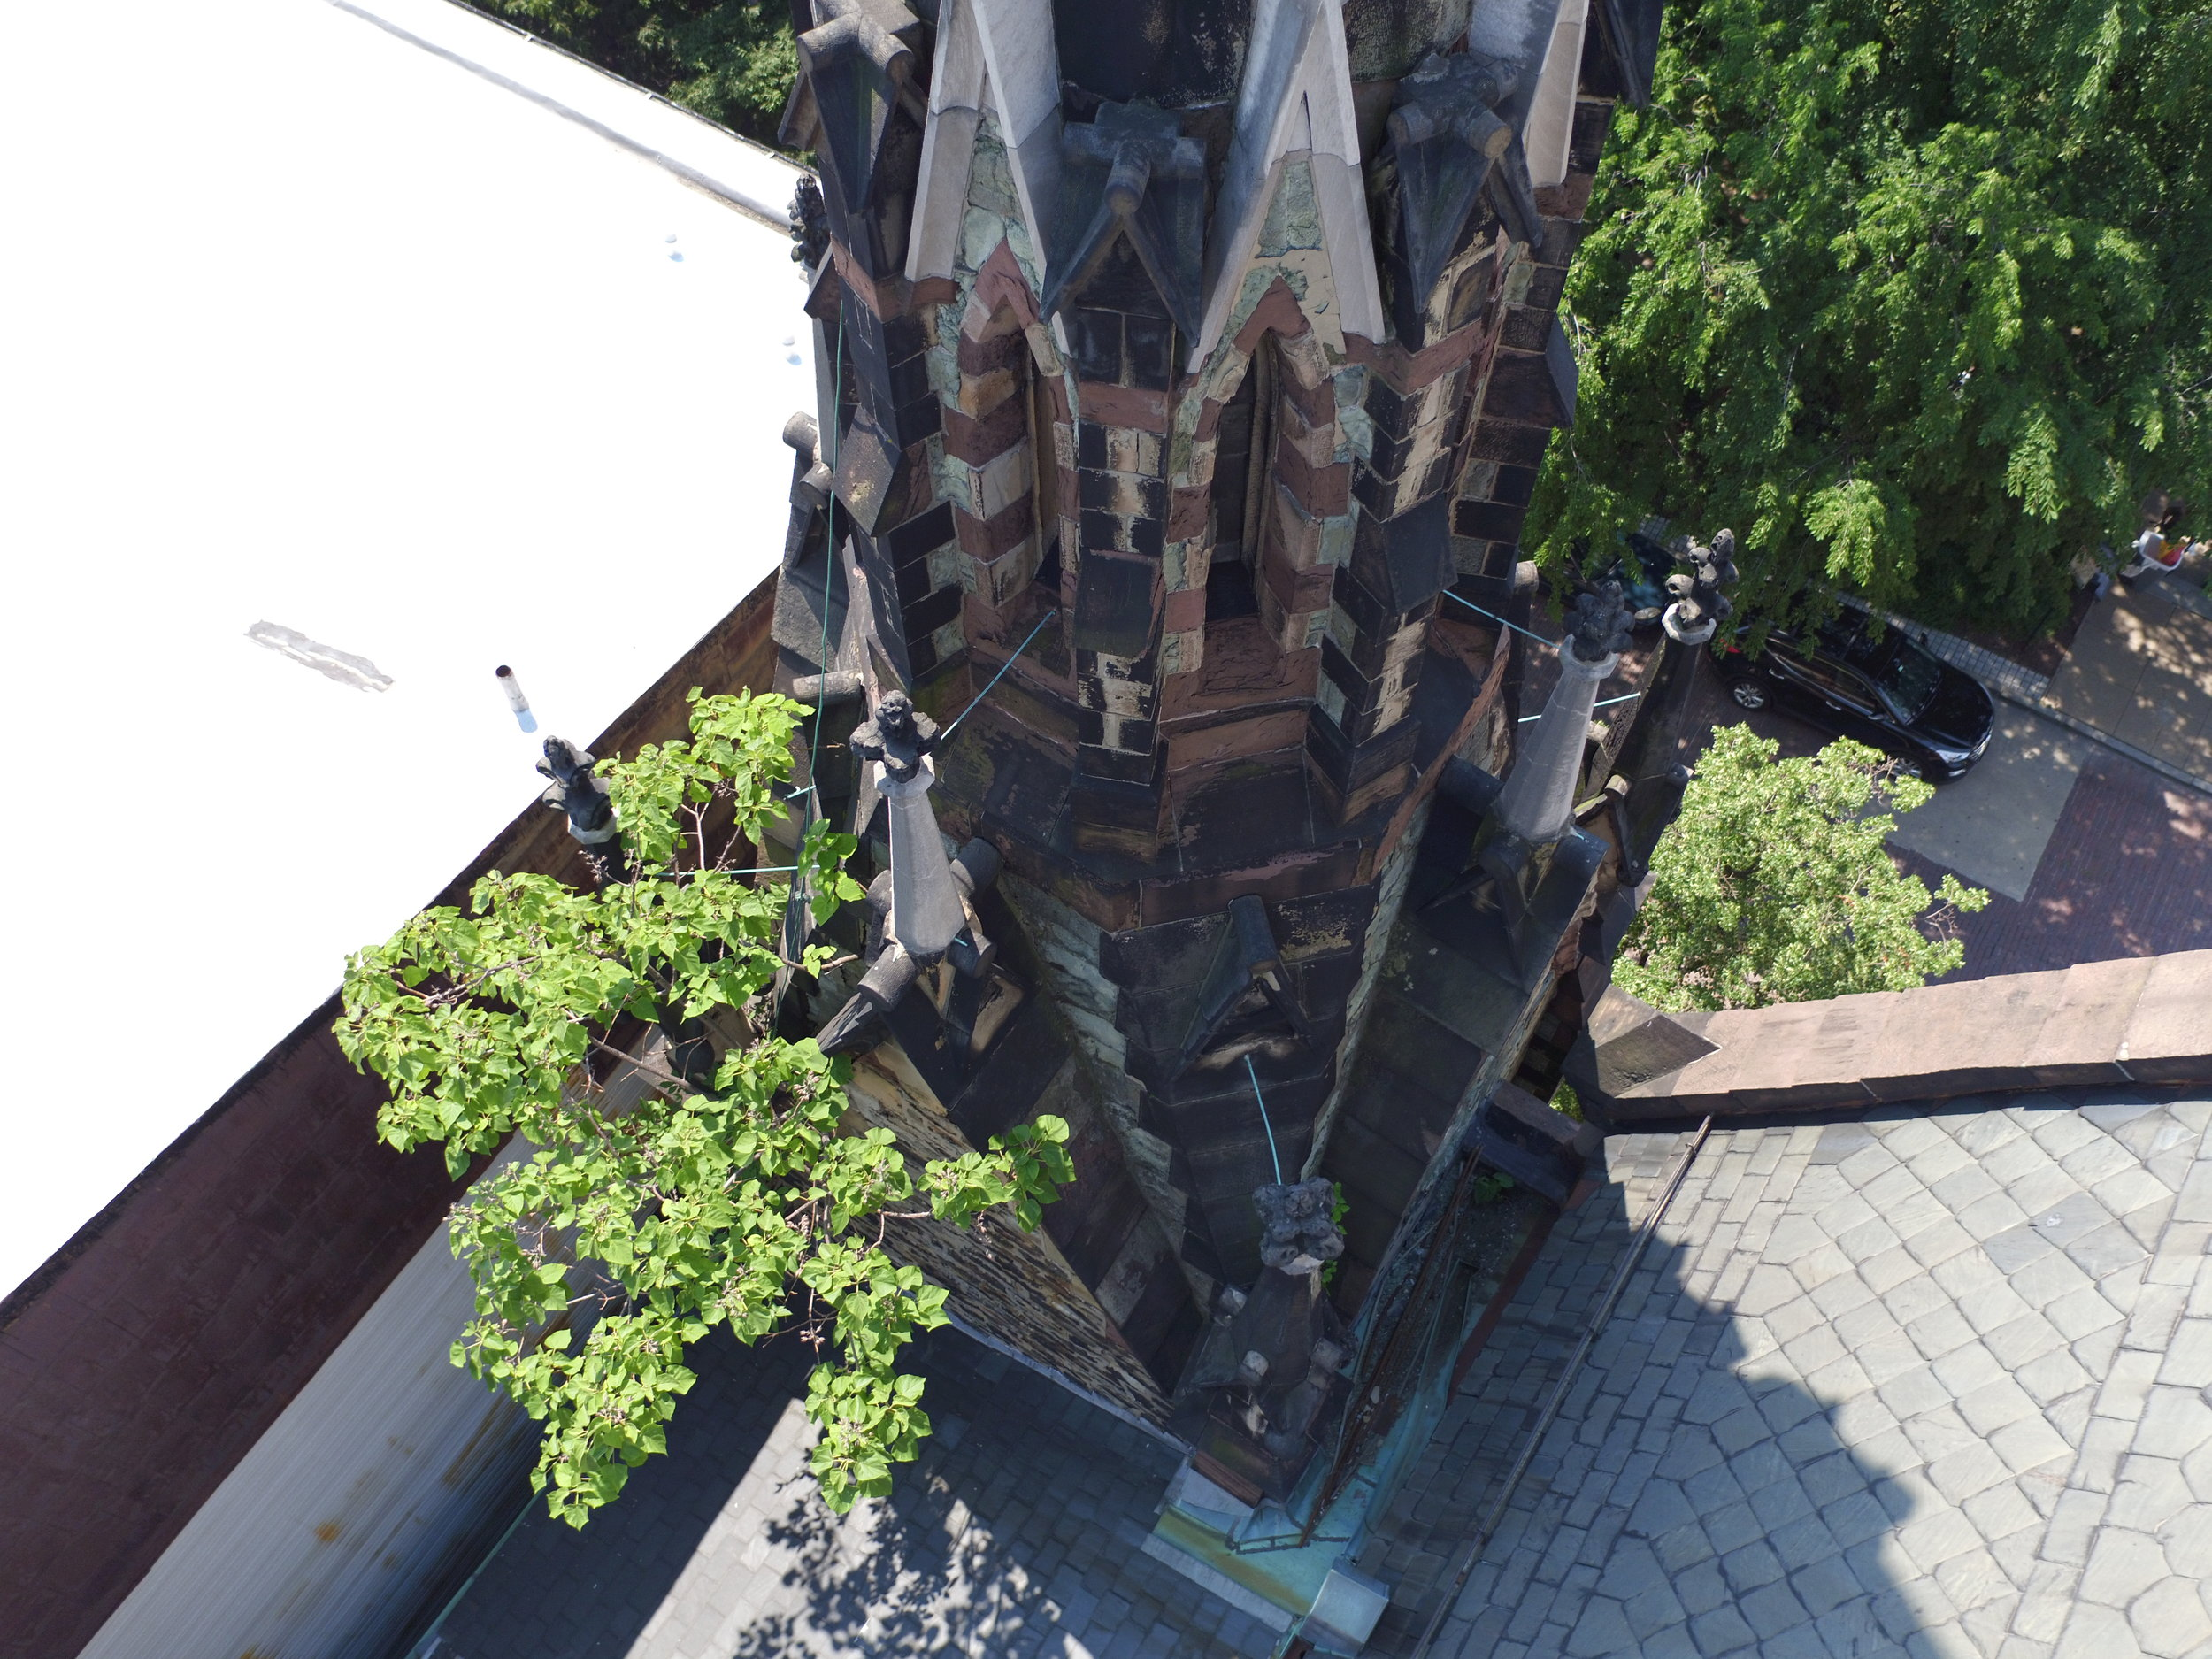 Church Spire with Tree Growth (!!)